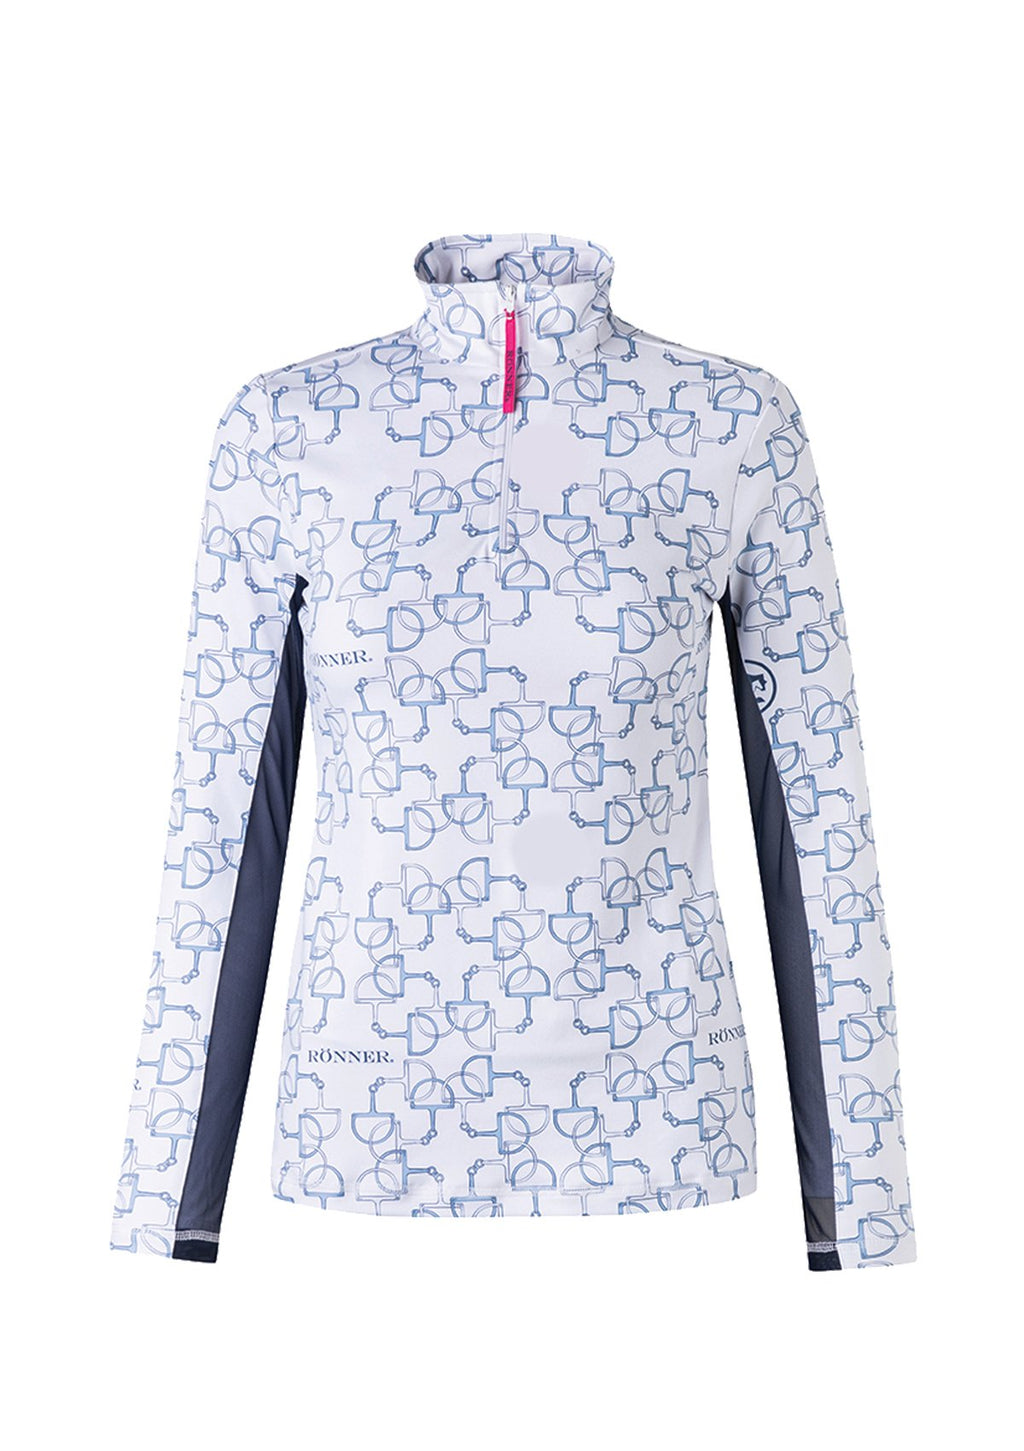 Ronner Sun Shirt - Campeona - The Dressage Store